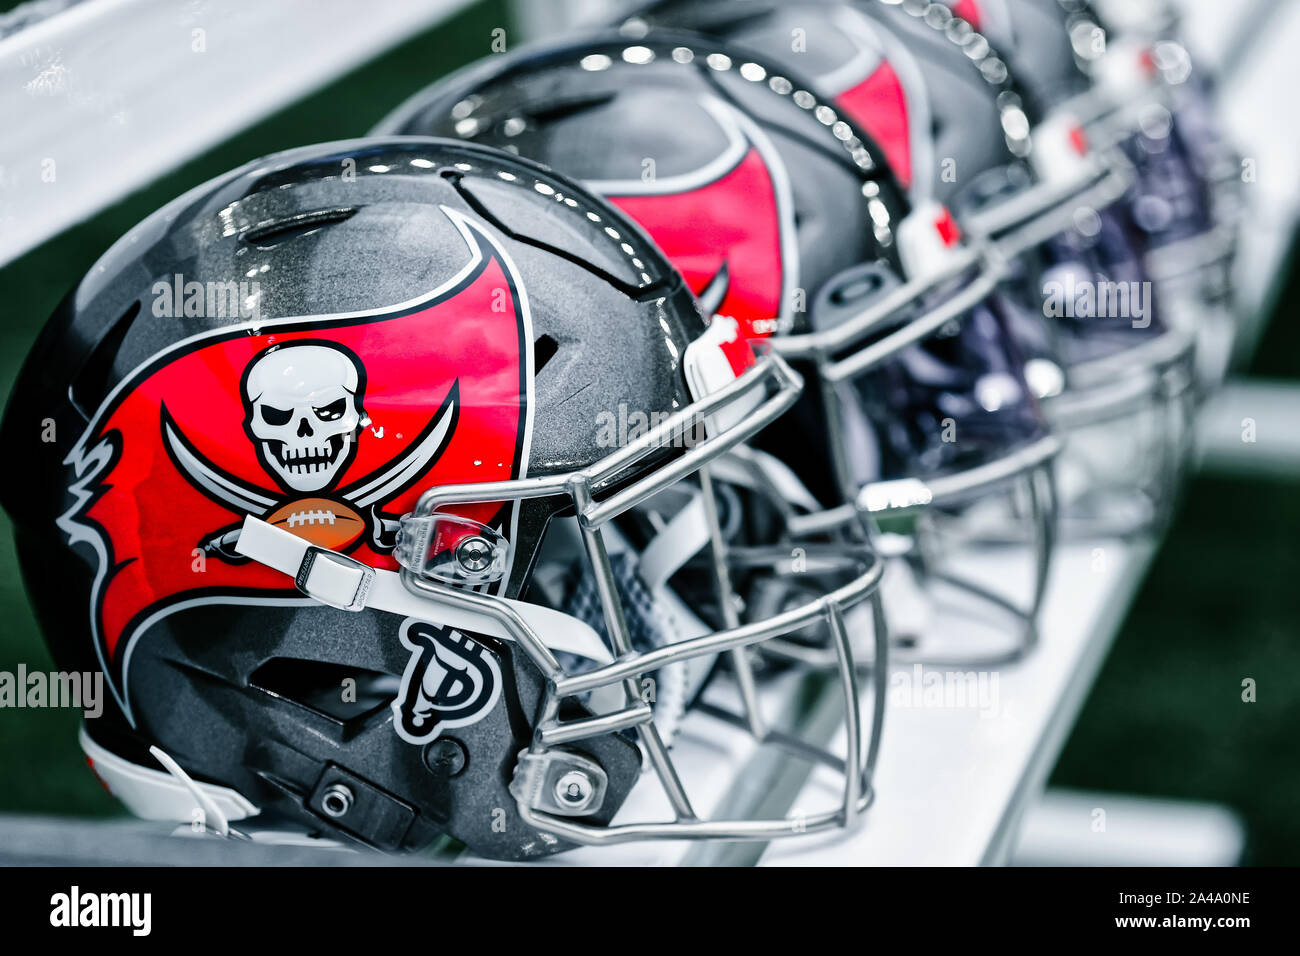 Tottenham Hotspur Stadium, London, UK. 13th Oct, 2019. National Football League, Carolina Panthers versus Tampa Bay Buccaneers; Tampa Bay Buccaneers helmets sit prepared for the game - Editorial Use Credit: Action Plus Sports/Alamy Live News Stock Photo